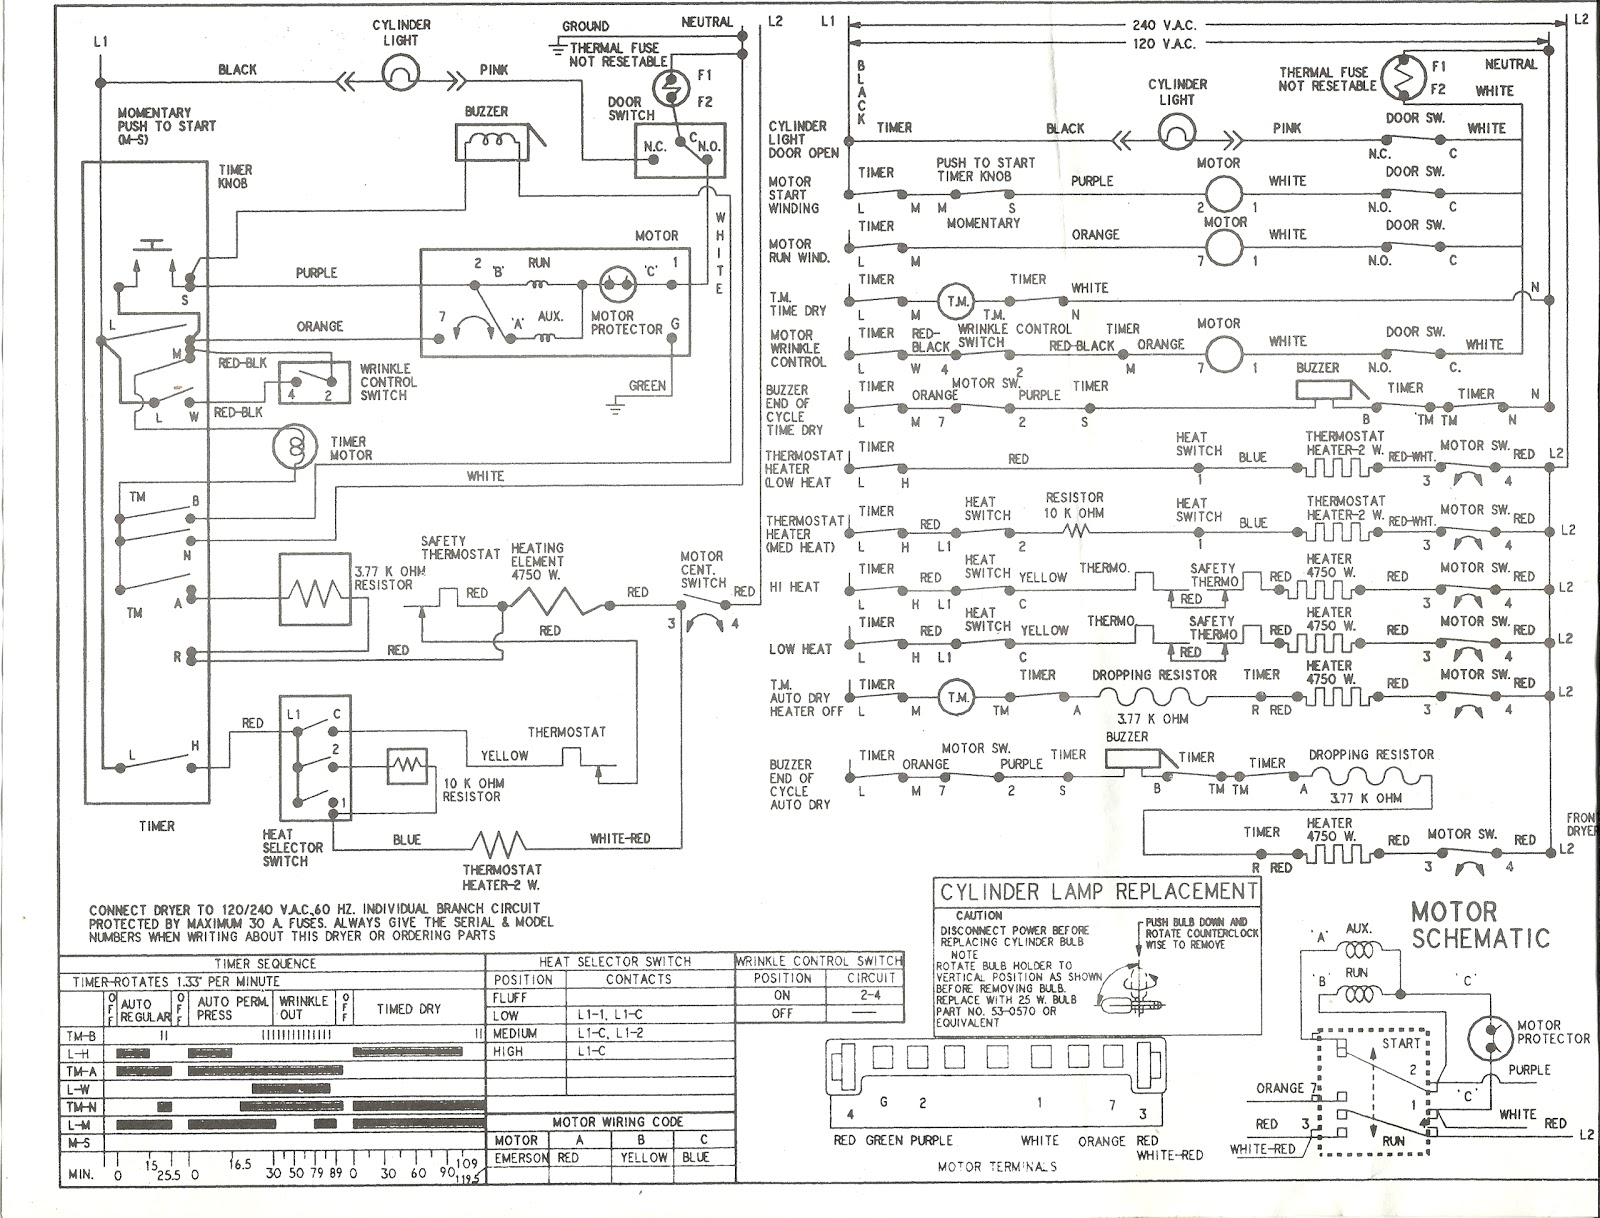 scan0001 dryer wiring diagram haier dryer wiring diagram \u2022 wiring diagrams sears kenmore washer model 110 wiring diagram at creativeand.co